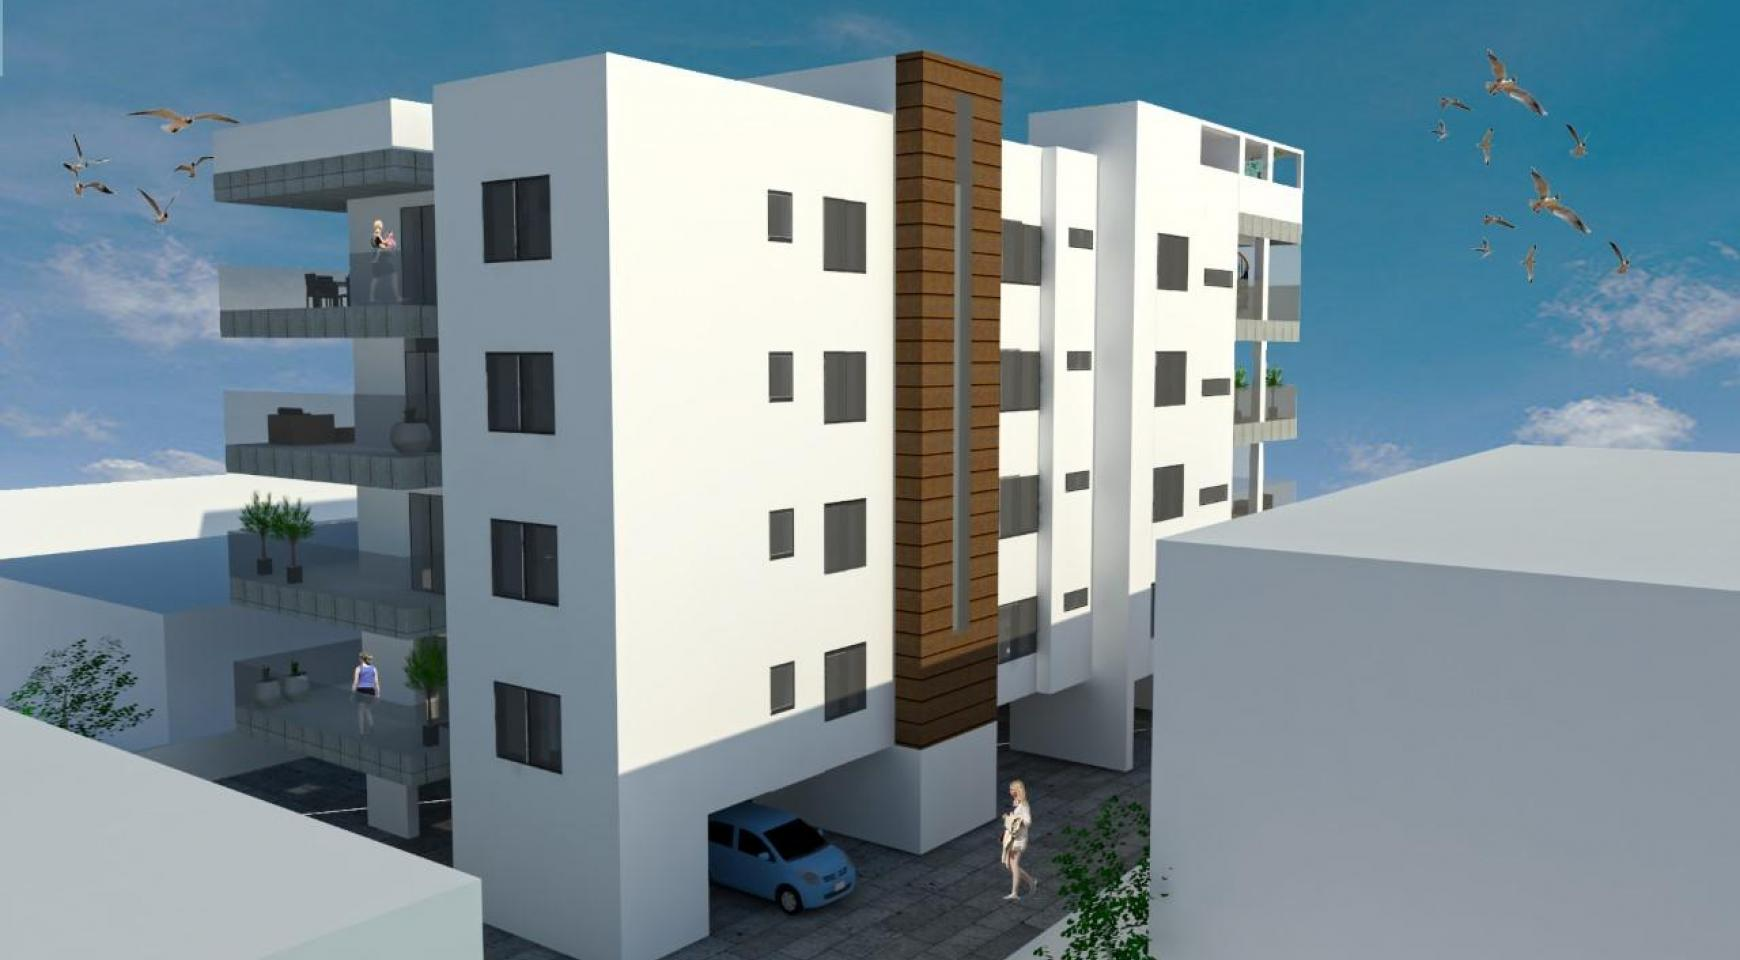 New 2 Bedroom Apartment in a Contemporary Building in the Town Centre - 3